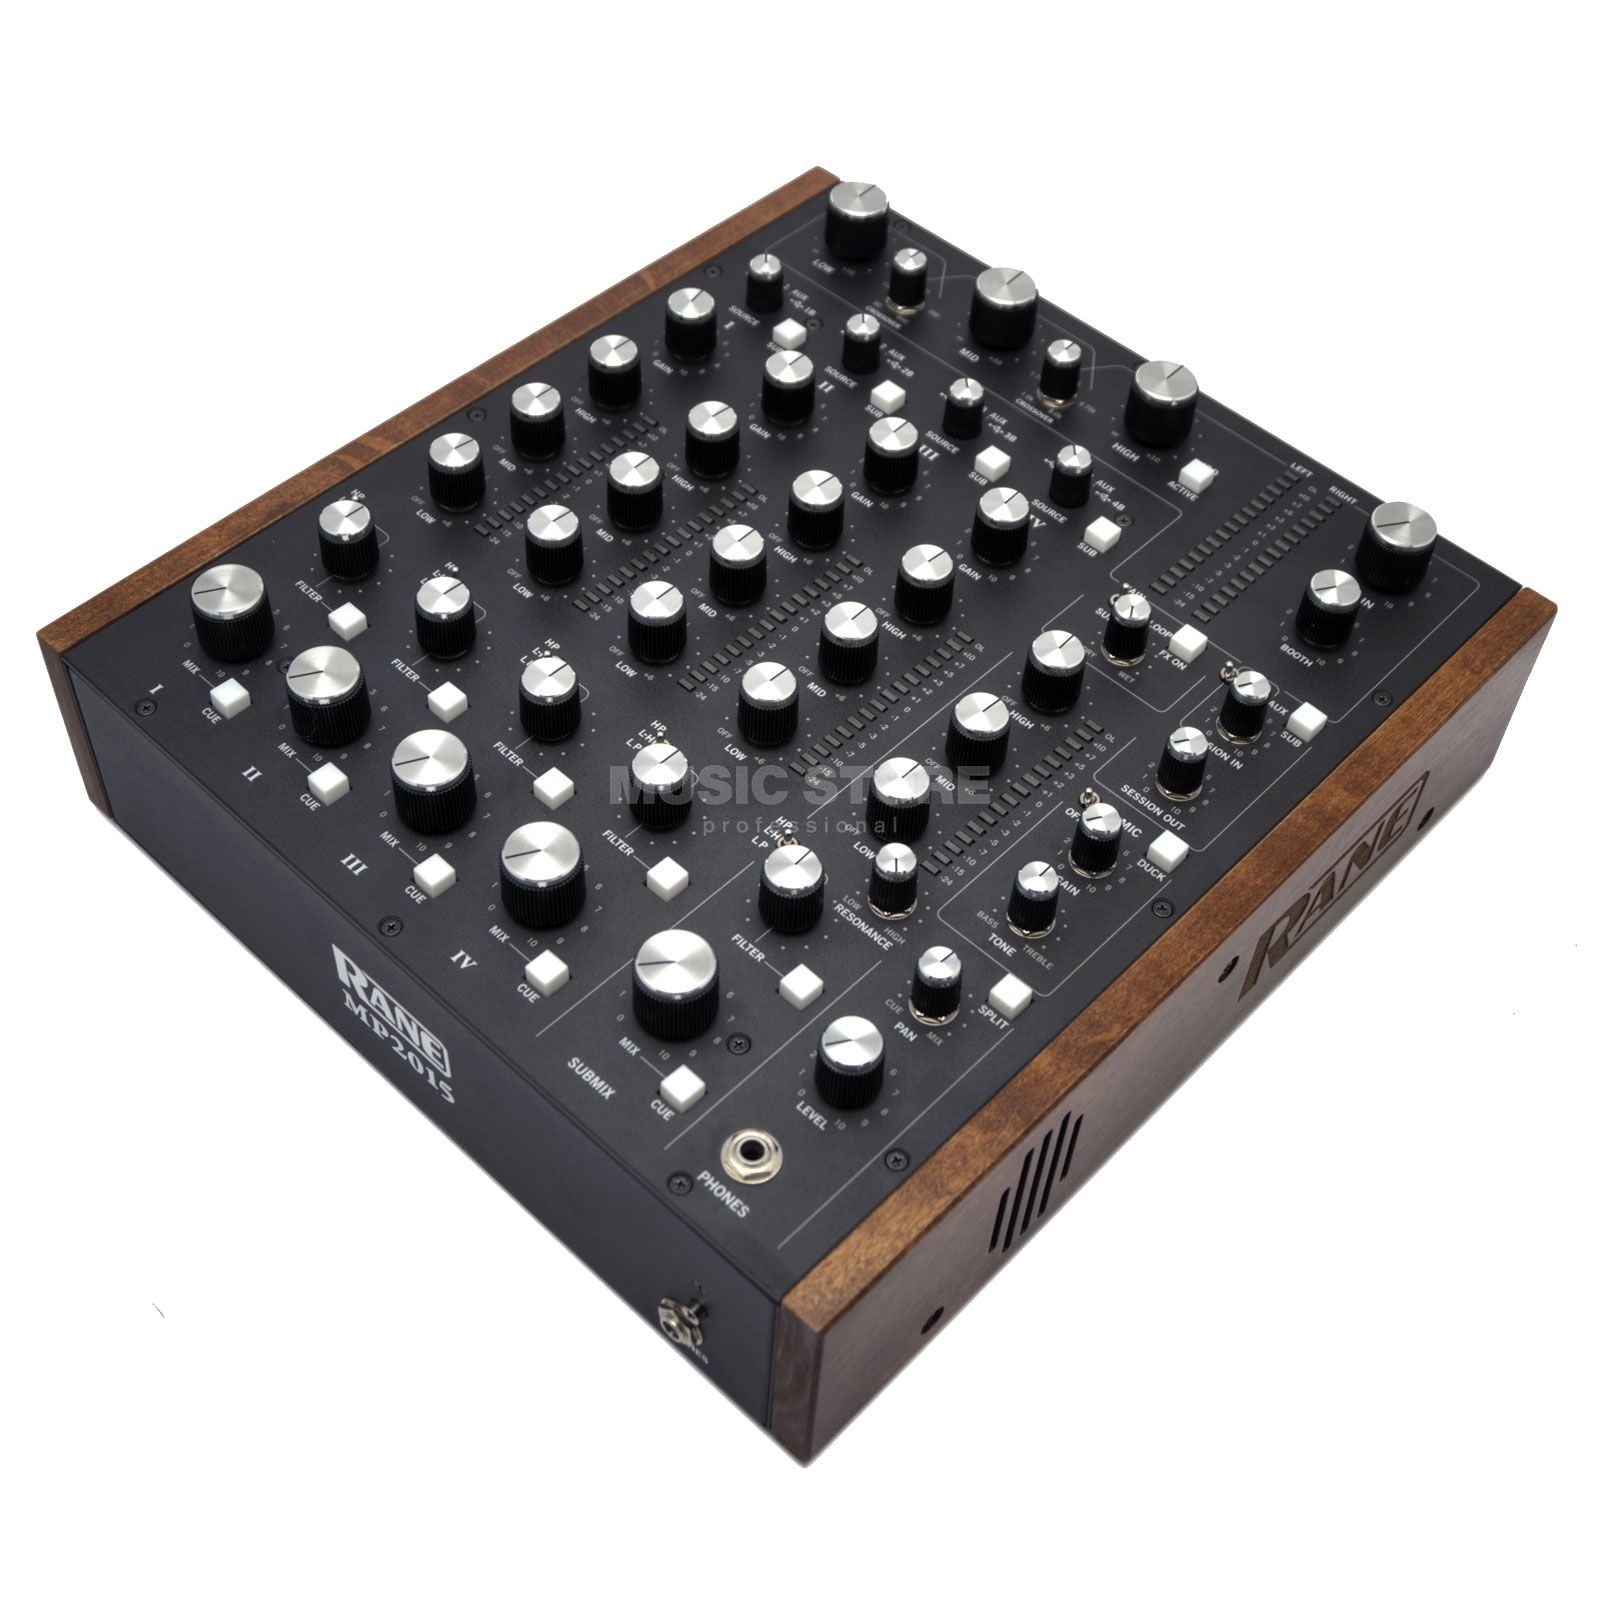 Rane MP 2015 Rotary Mixer with USB-Interface Immagine prodotto